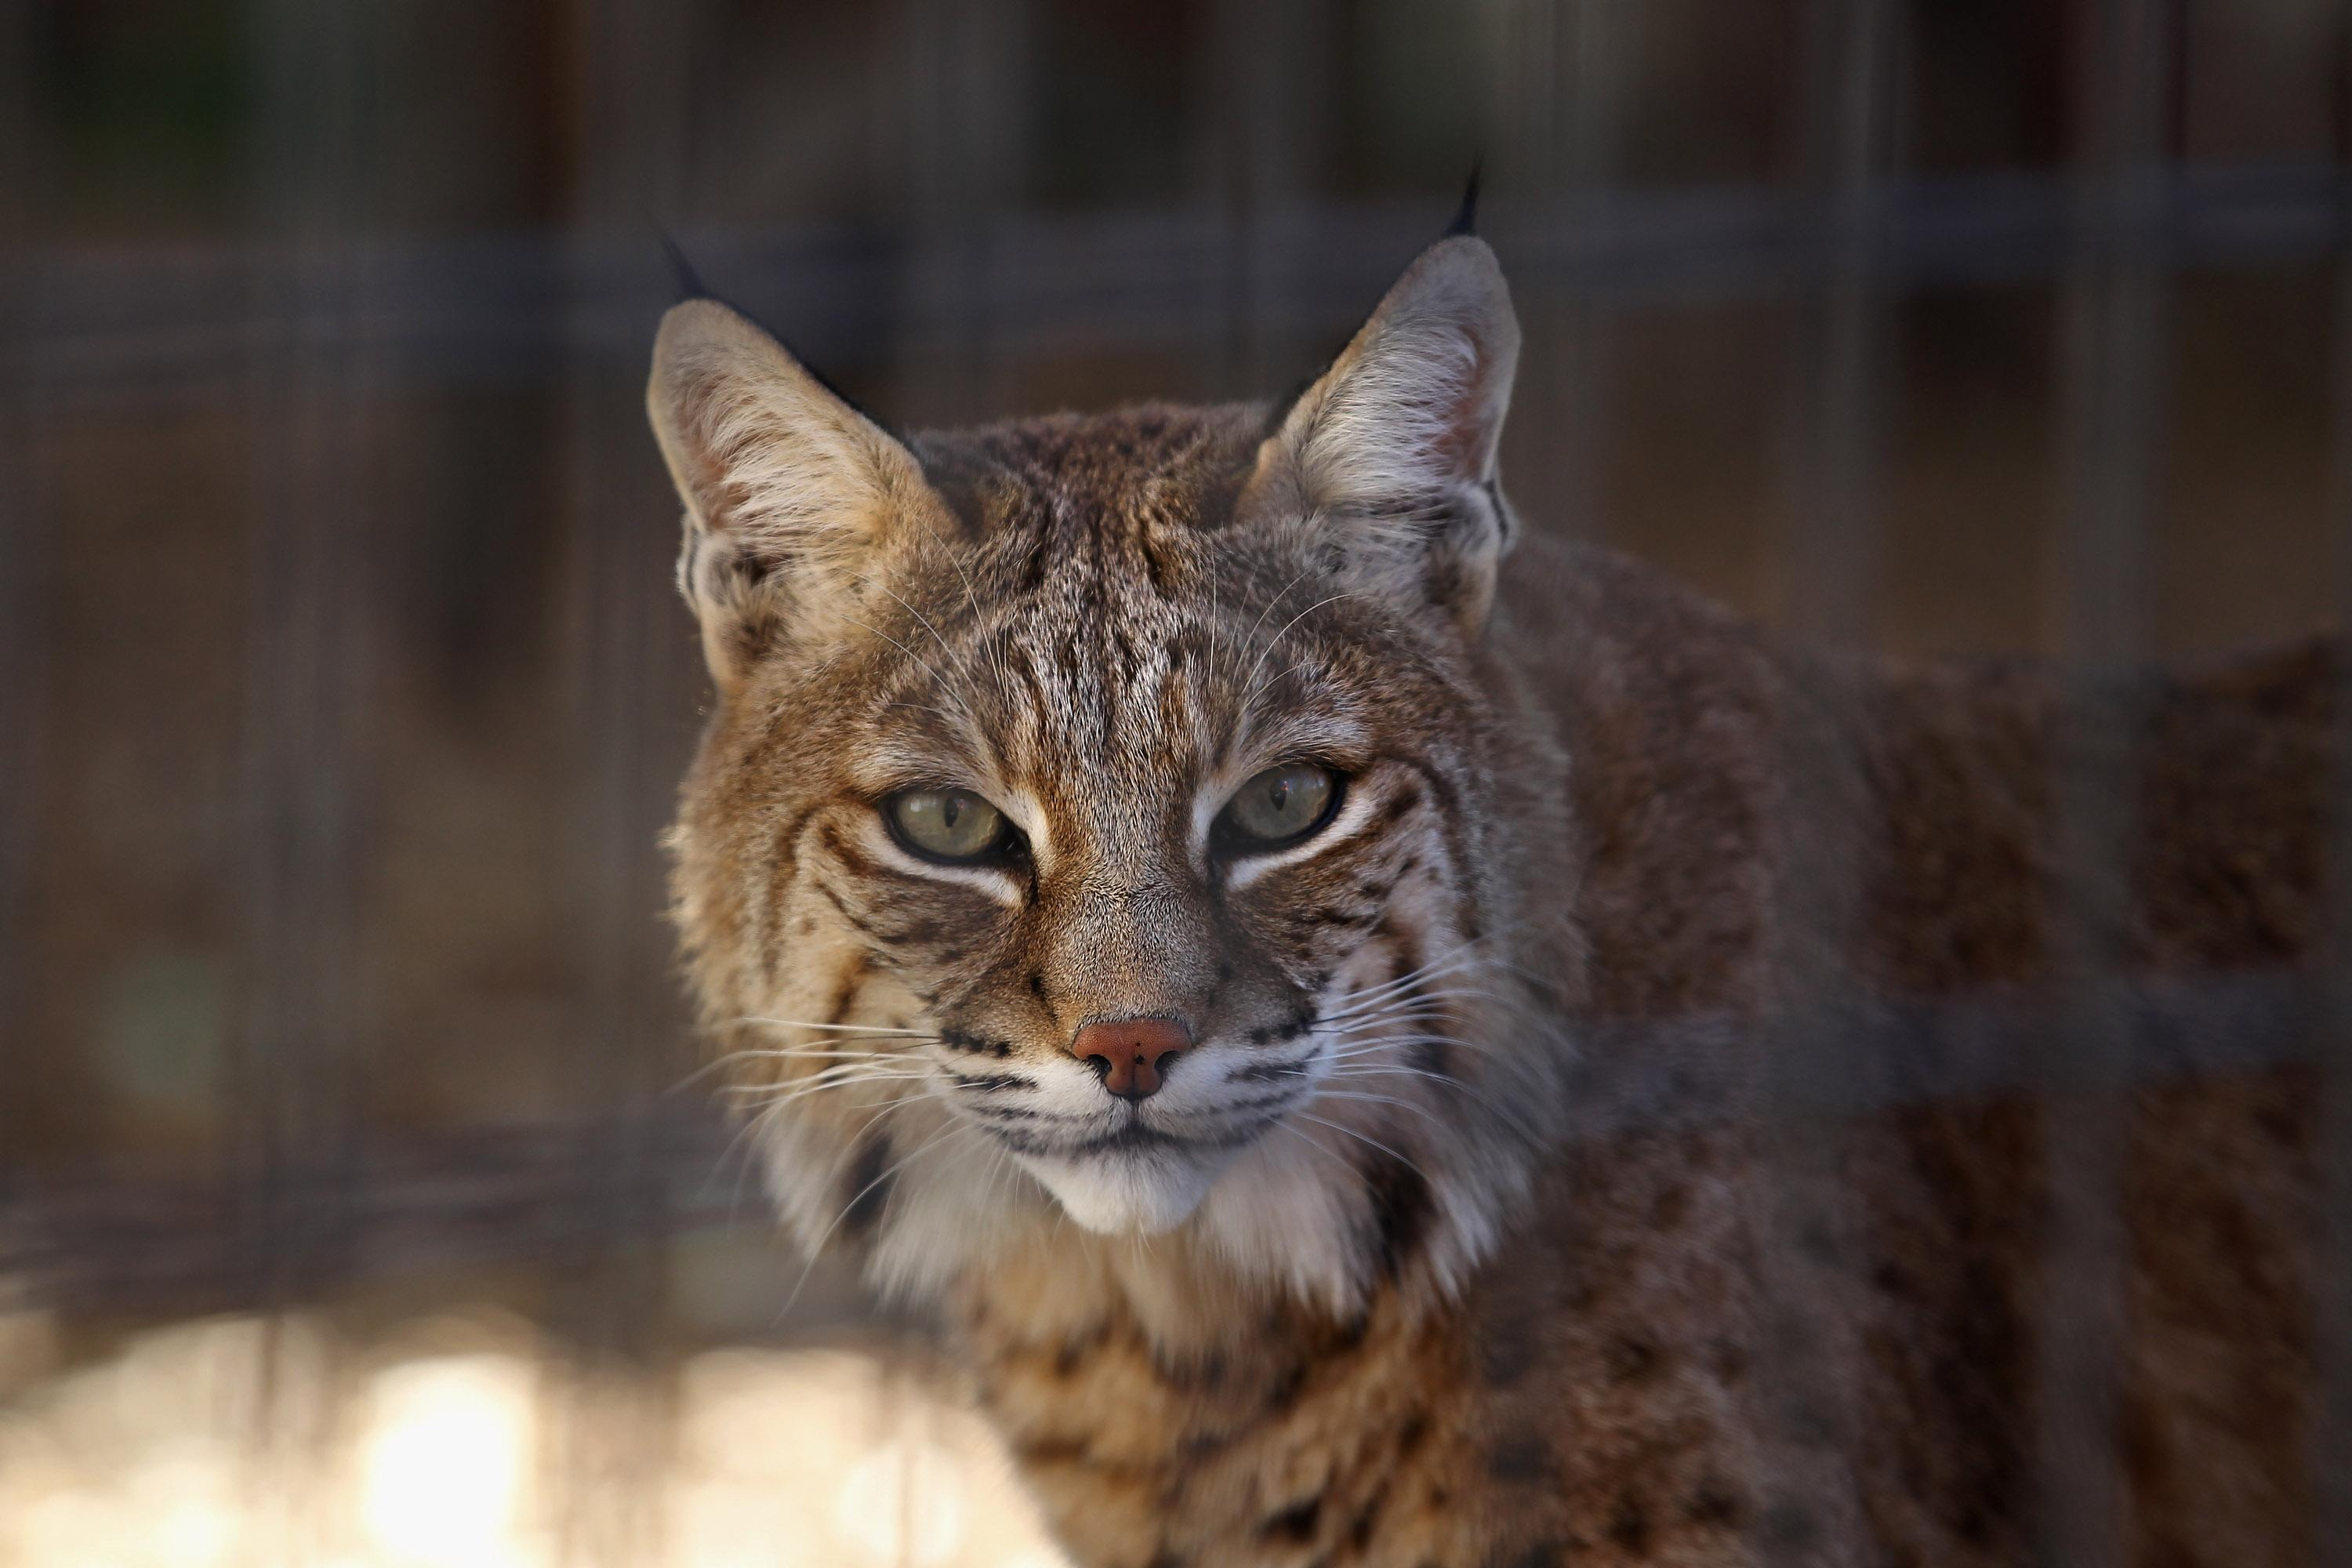 'I wasn't dying today:' Grandma kills rabid bobcat with her bare hands